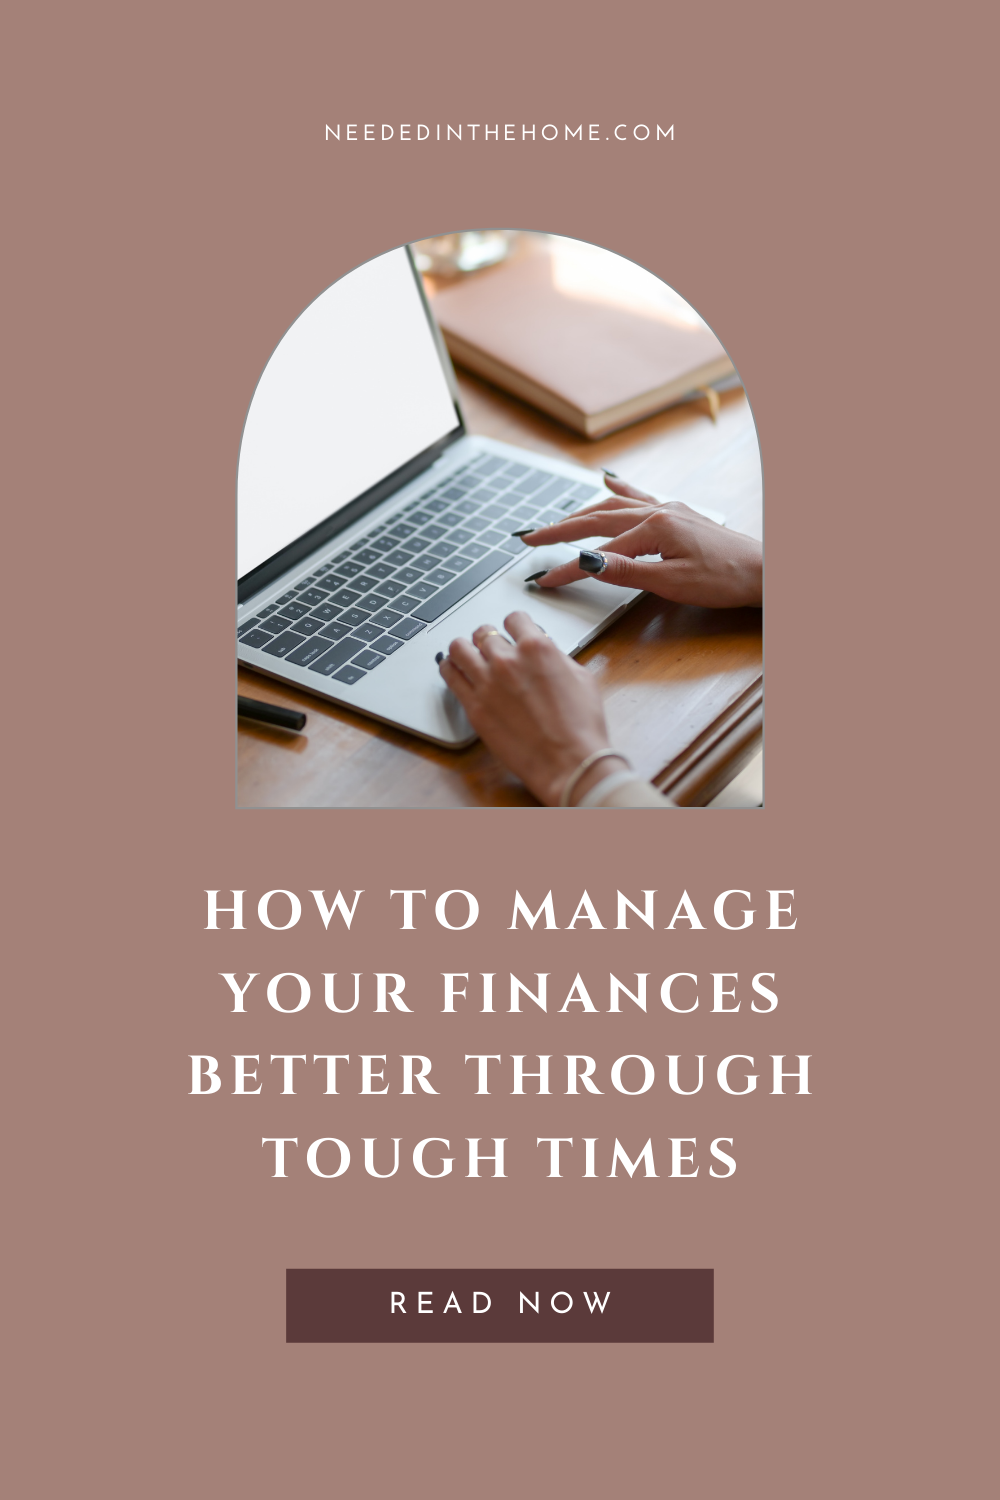 pinterest-pin-description How To Manage Your Finances Better Through Tough Times laptop typing neededinthehome